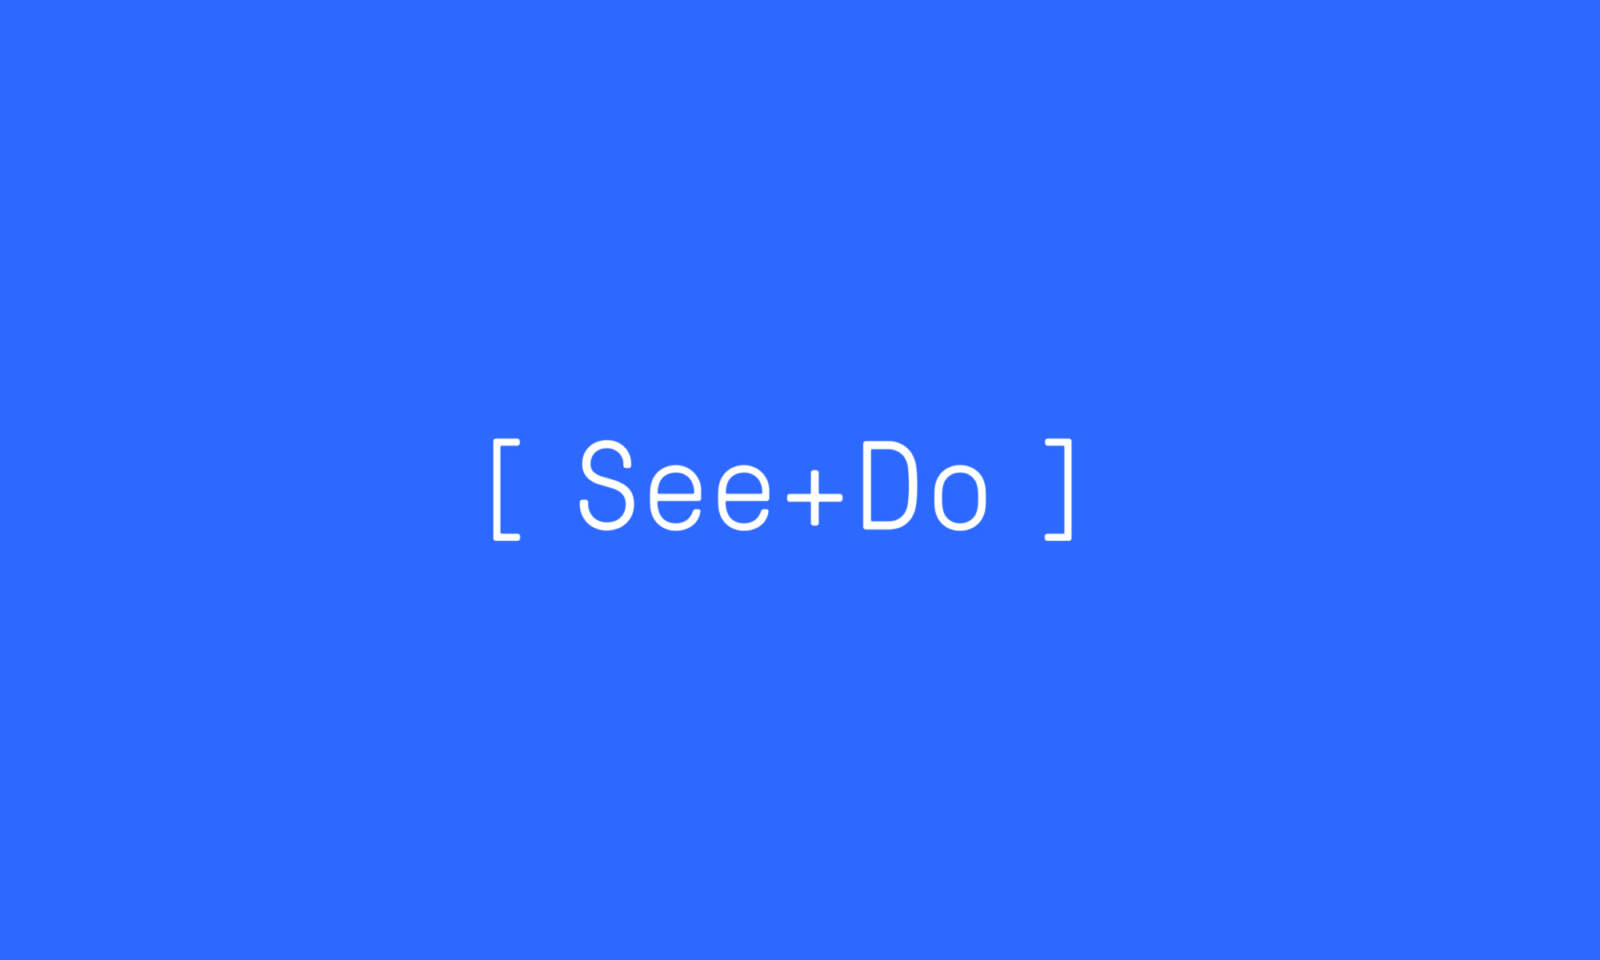 Type based logo for the See+Do event listing website.